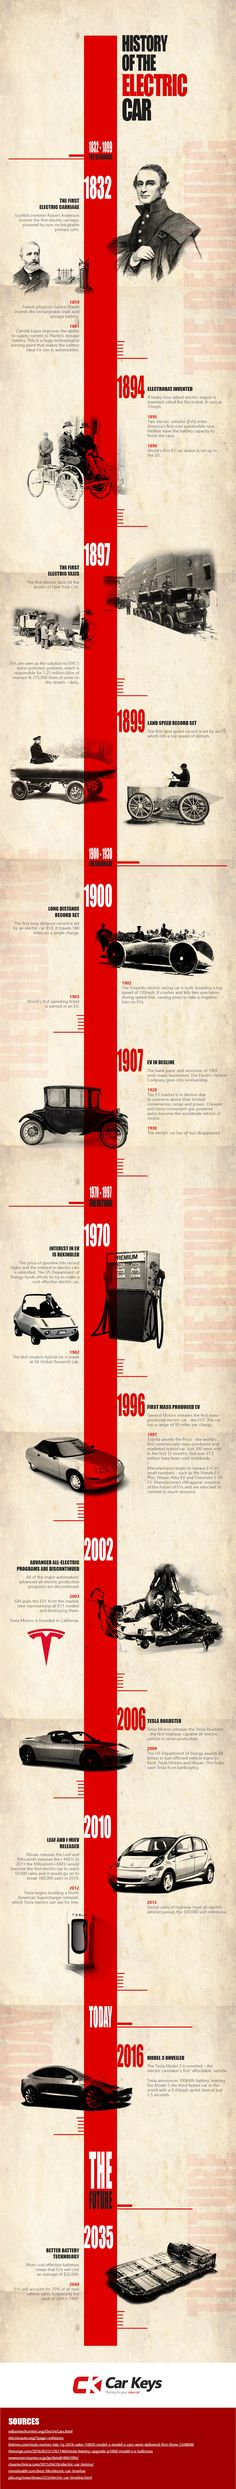 Infographic: Tesla Motors and the history of the electric car | EVANNEX Aftermarket Tesla Accessories